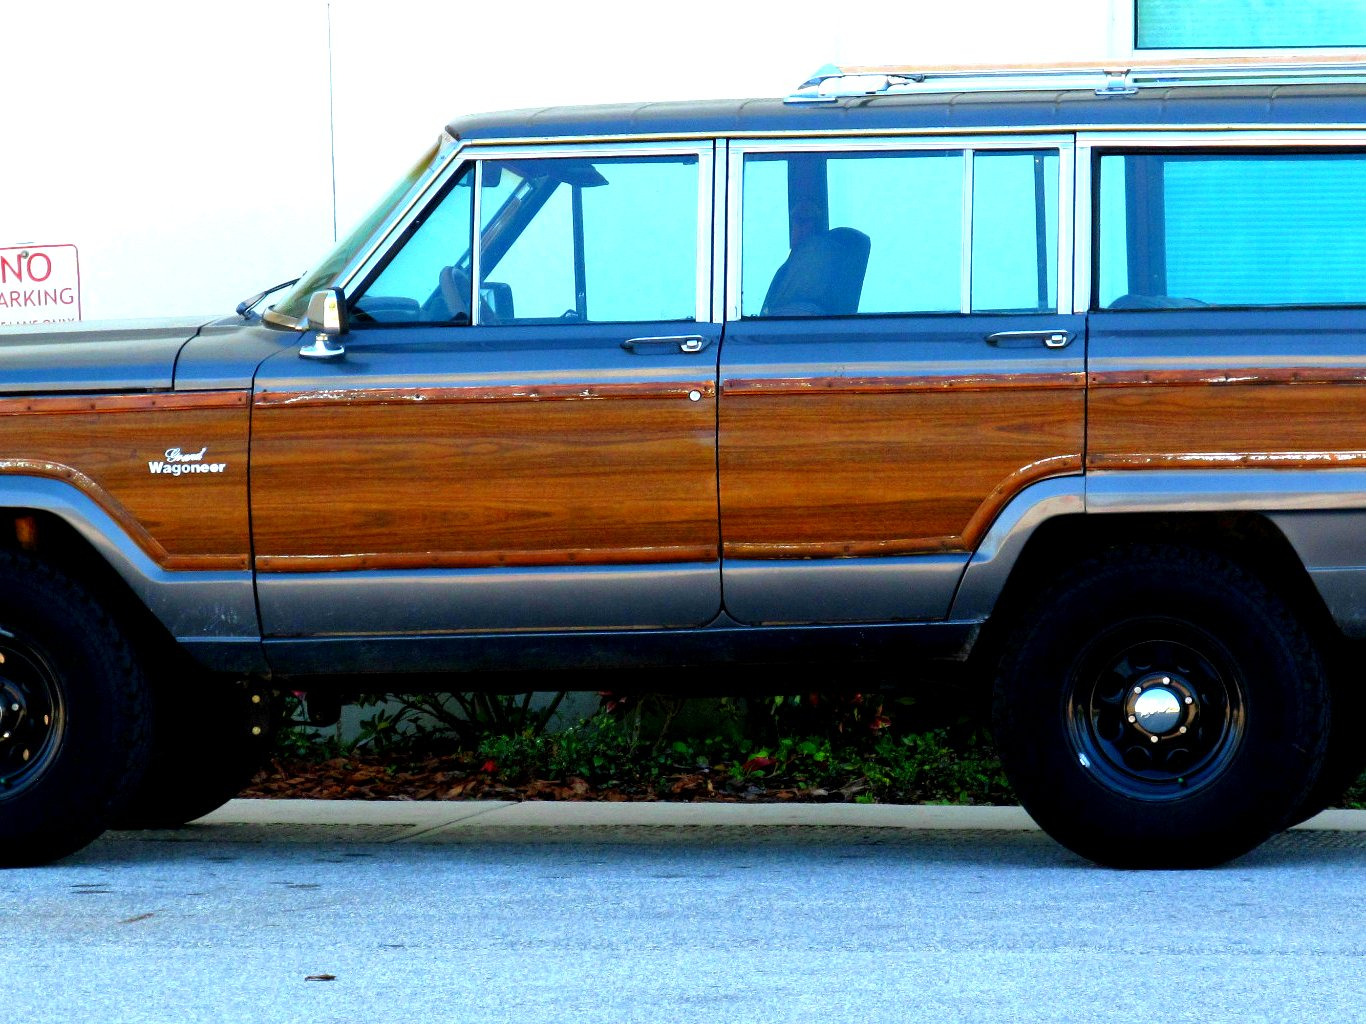 I know it may sound strange, but I sincerely would like to drive a station  wagon. - Classic Grass Is Greener